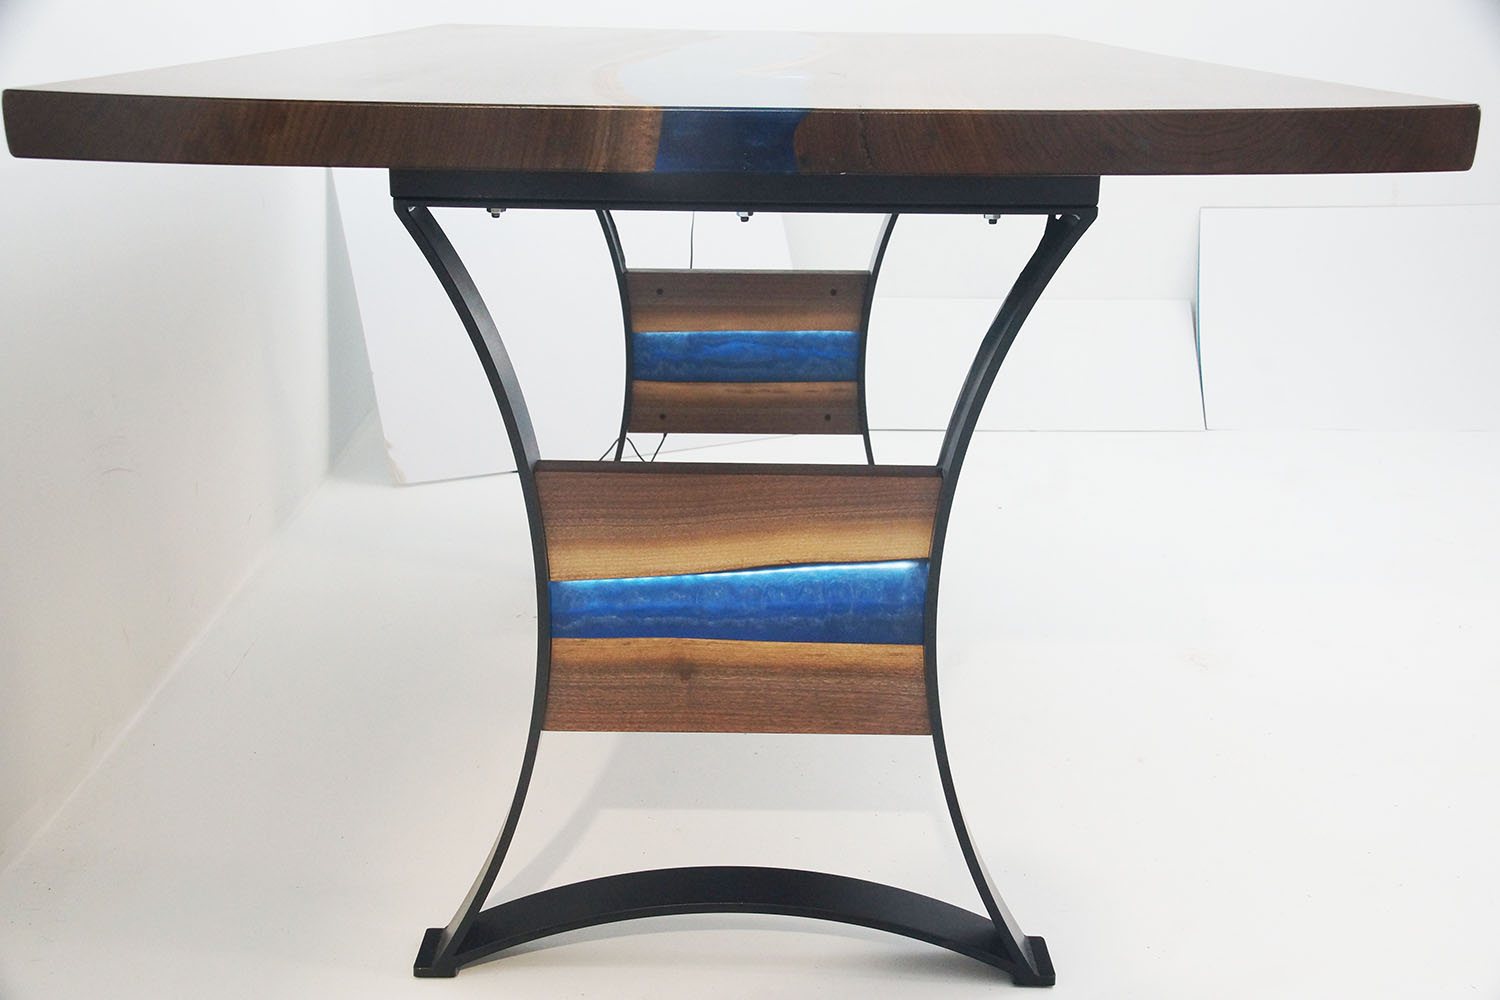 LED Lit Dining Room Table With Blue Resin & Specialty Base